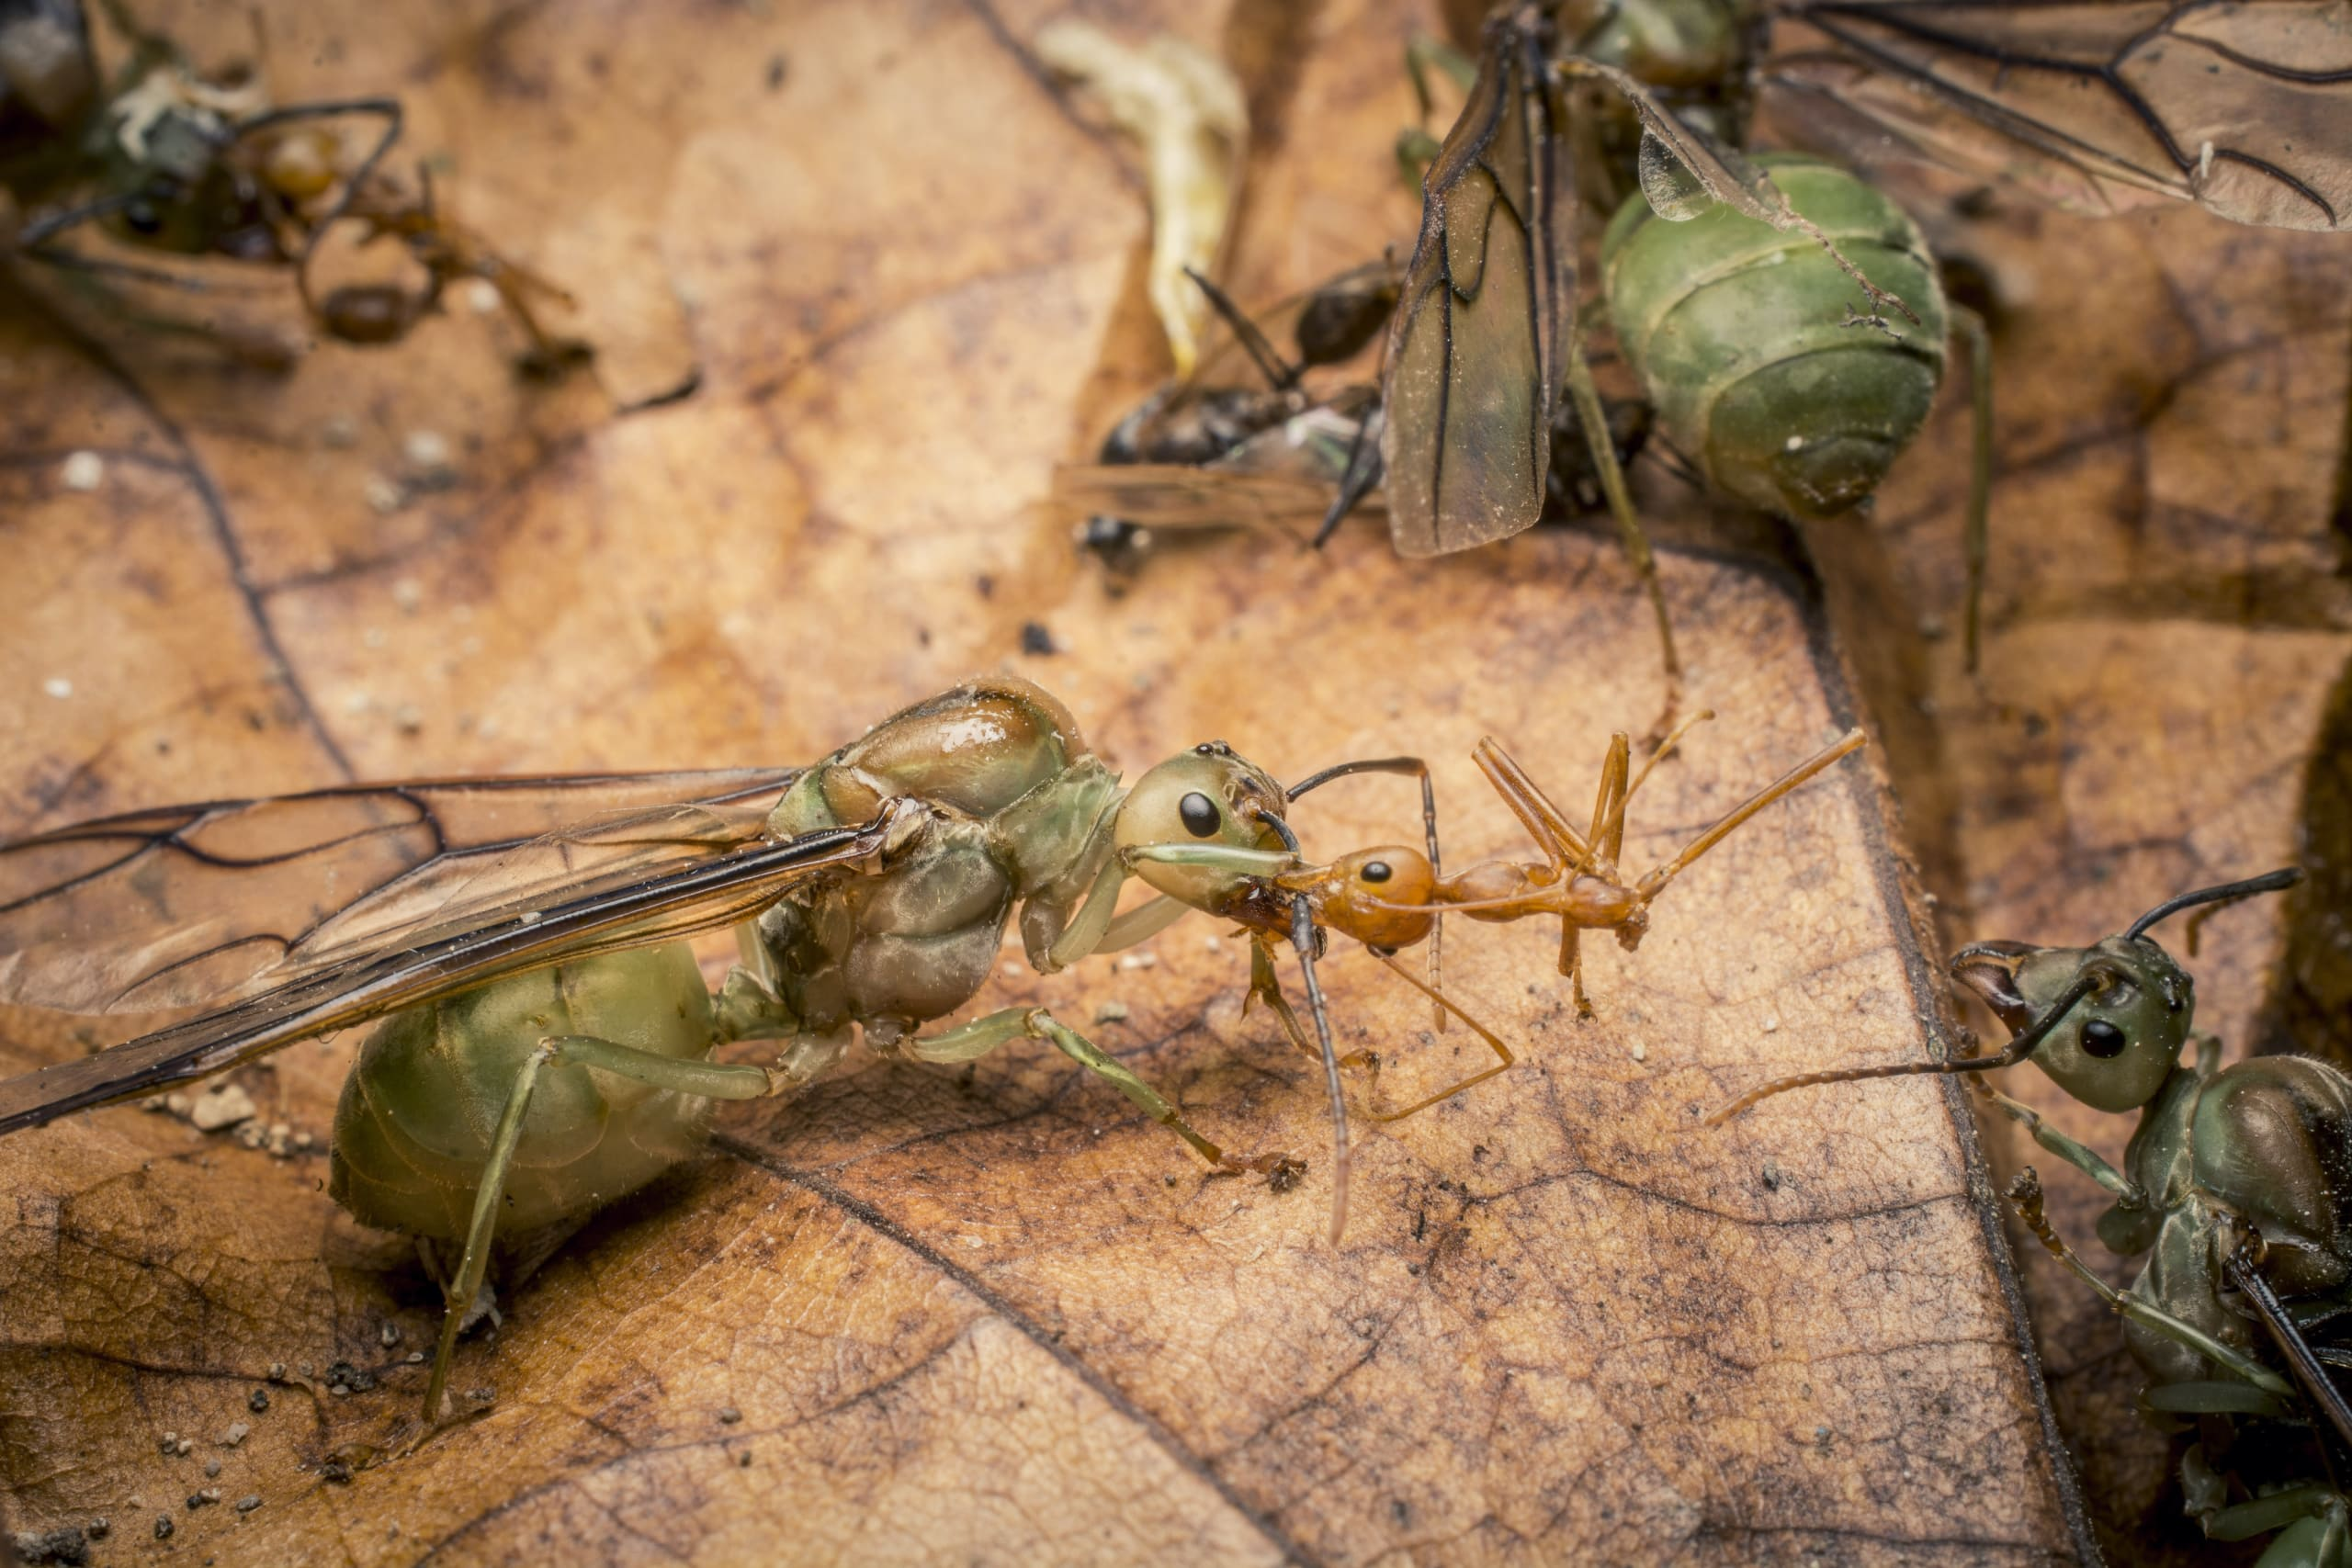 A worker from a nearby colony attacks a recently mated queen that has fallen to the ground.